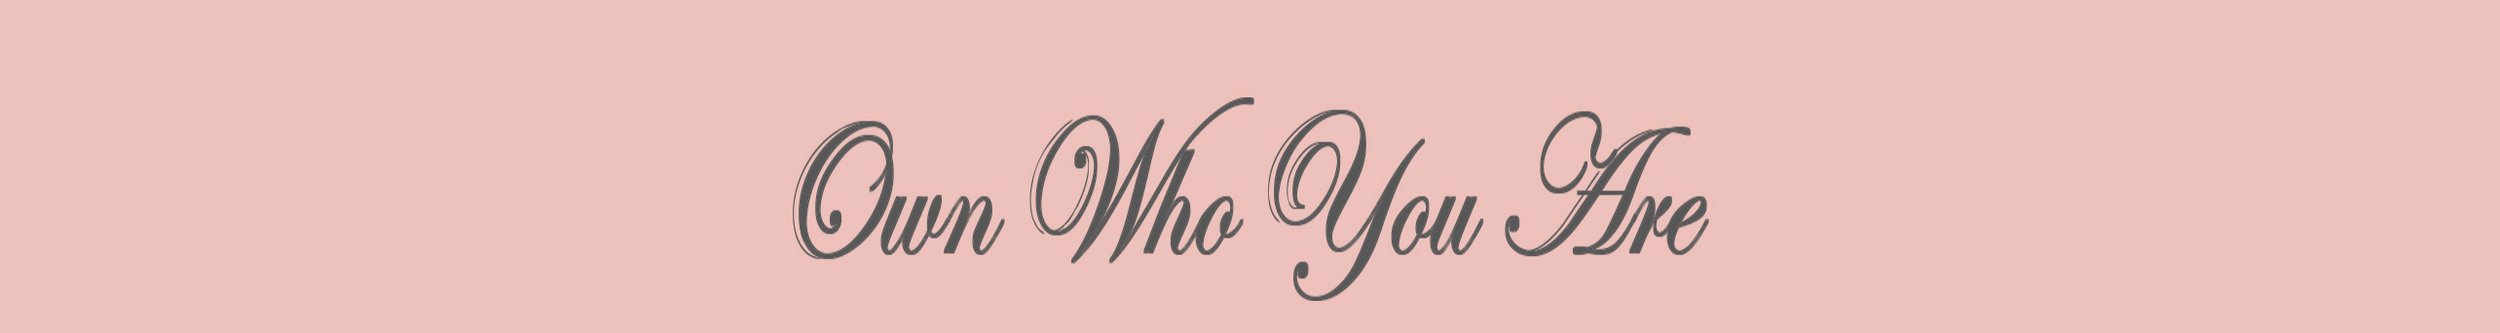 own who you are 2.jpg